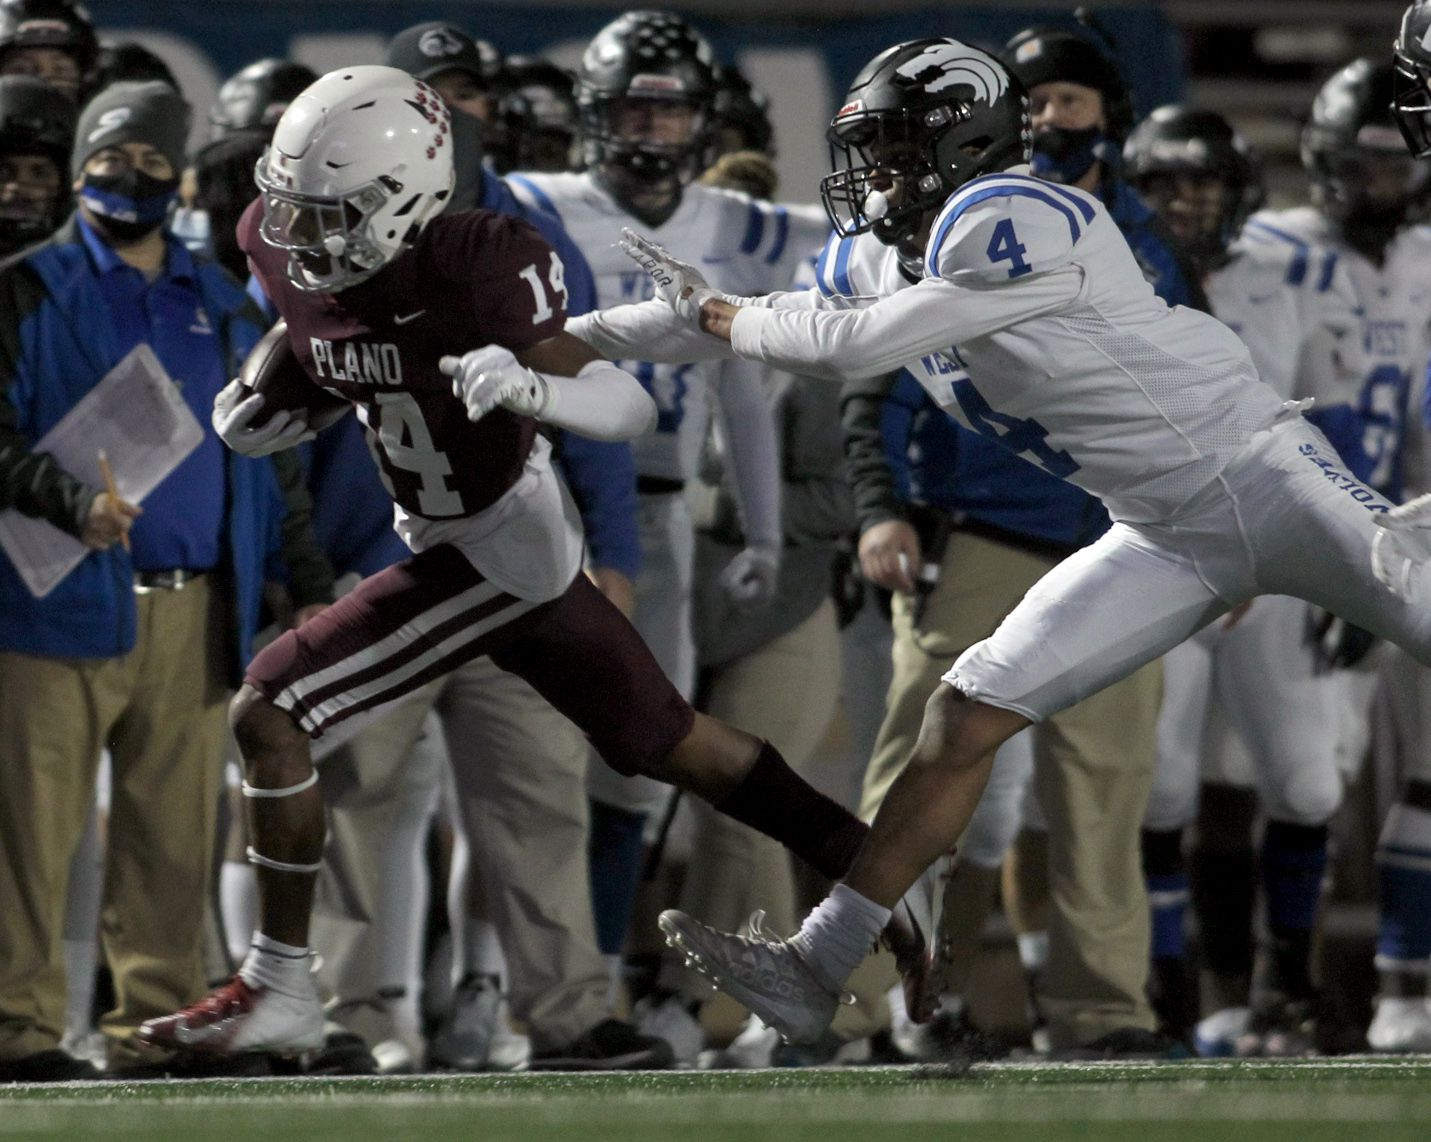 Plano receiver Khamare Spivery (14) is shoved out of bounds by Plano West defensive back Tyler Harrell (4) following a second quarter reception. The two teams played their District 6-6A football game at Clark Stadium in Plano on December 4, 2020. (Steve Hamm/ Special Contributor)